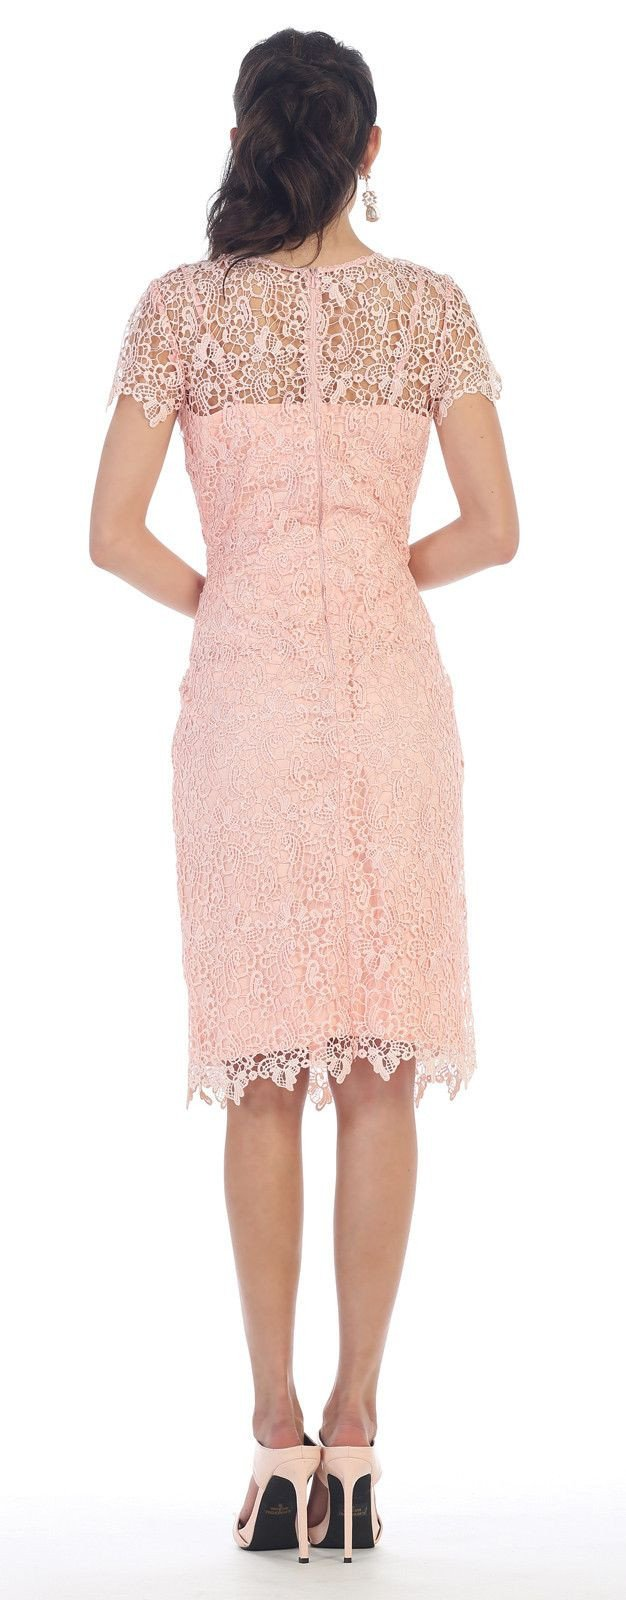 Short Cocktail Mother of the Bride Dress 2018